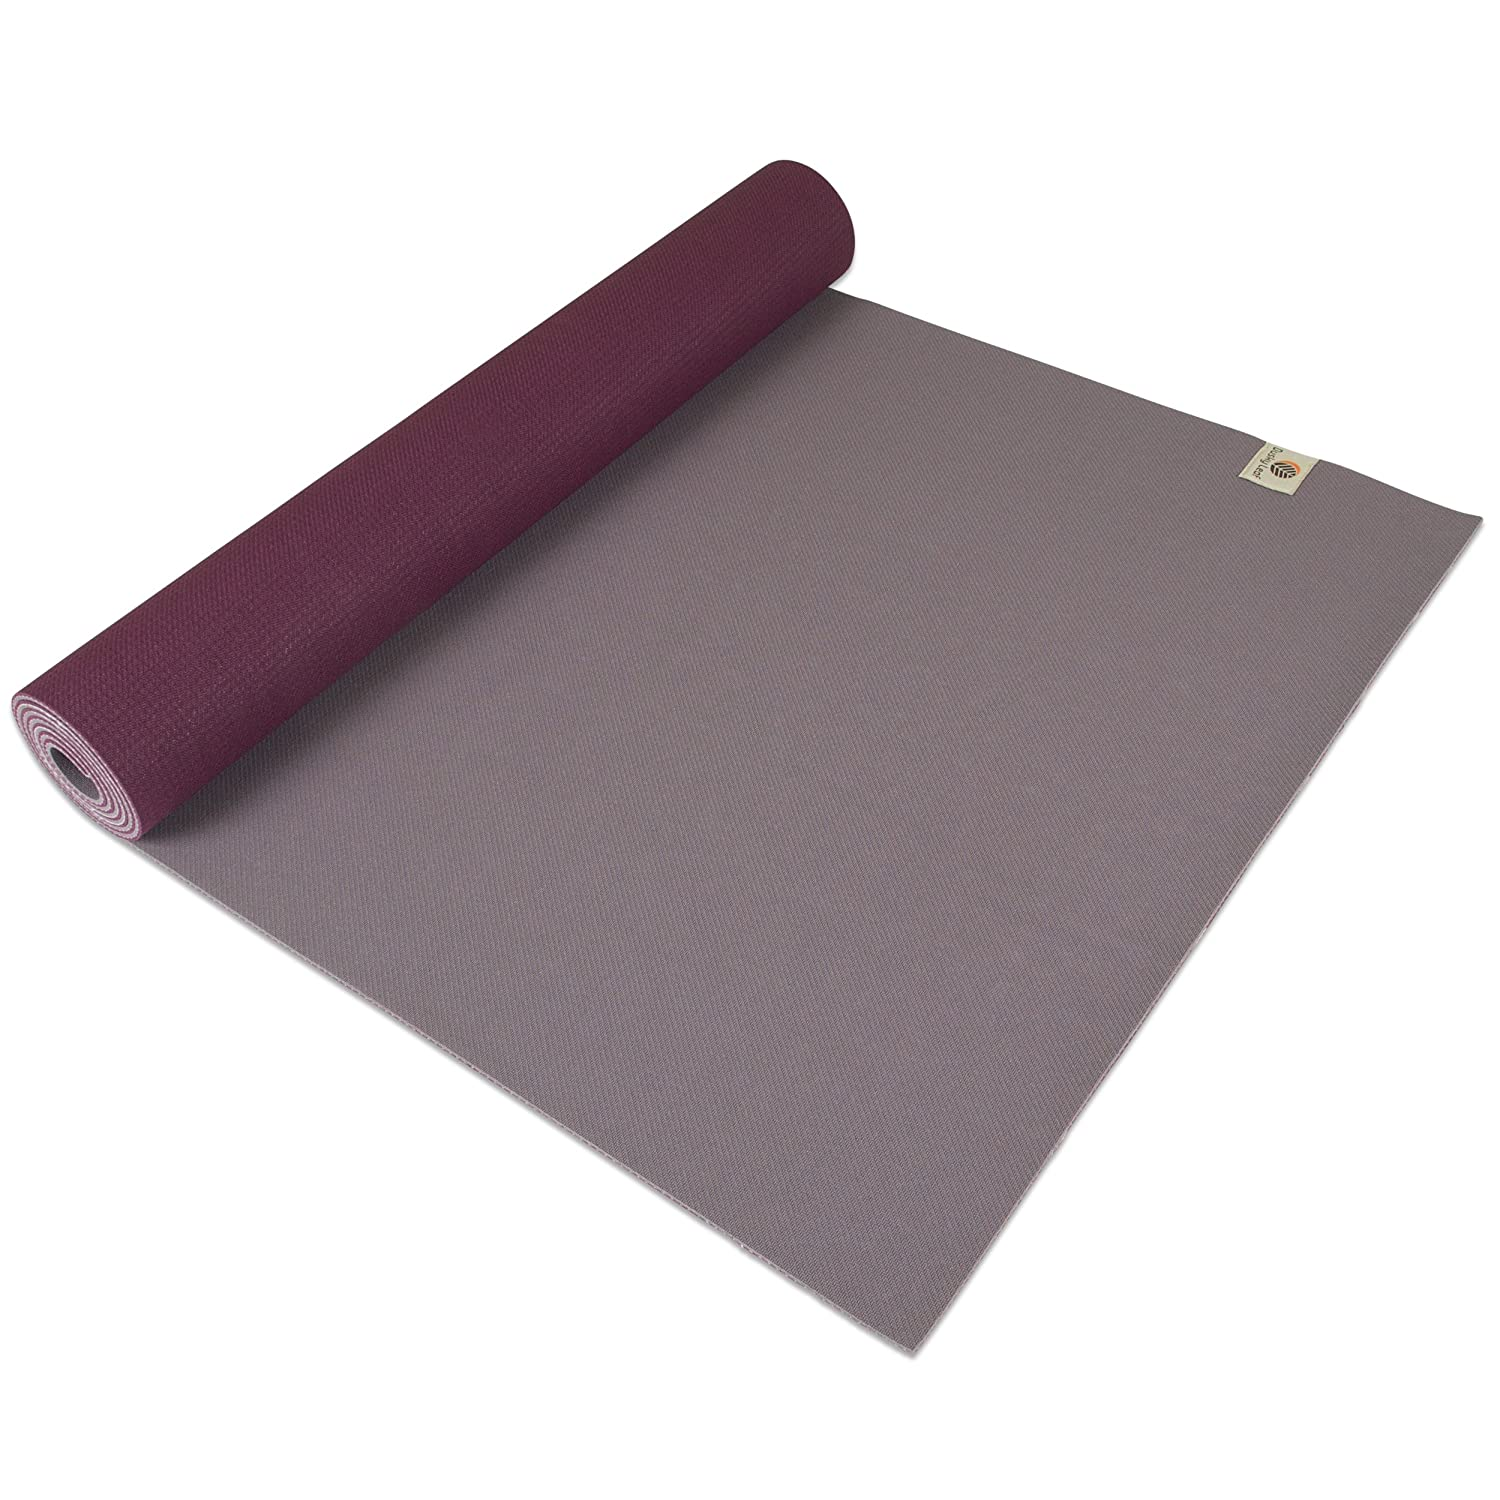 expert mats the best sweat yoga guides test review pro mat manduka jade compared screen lite